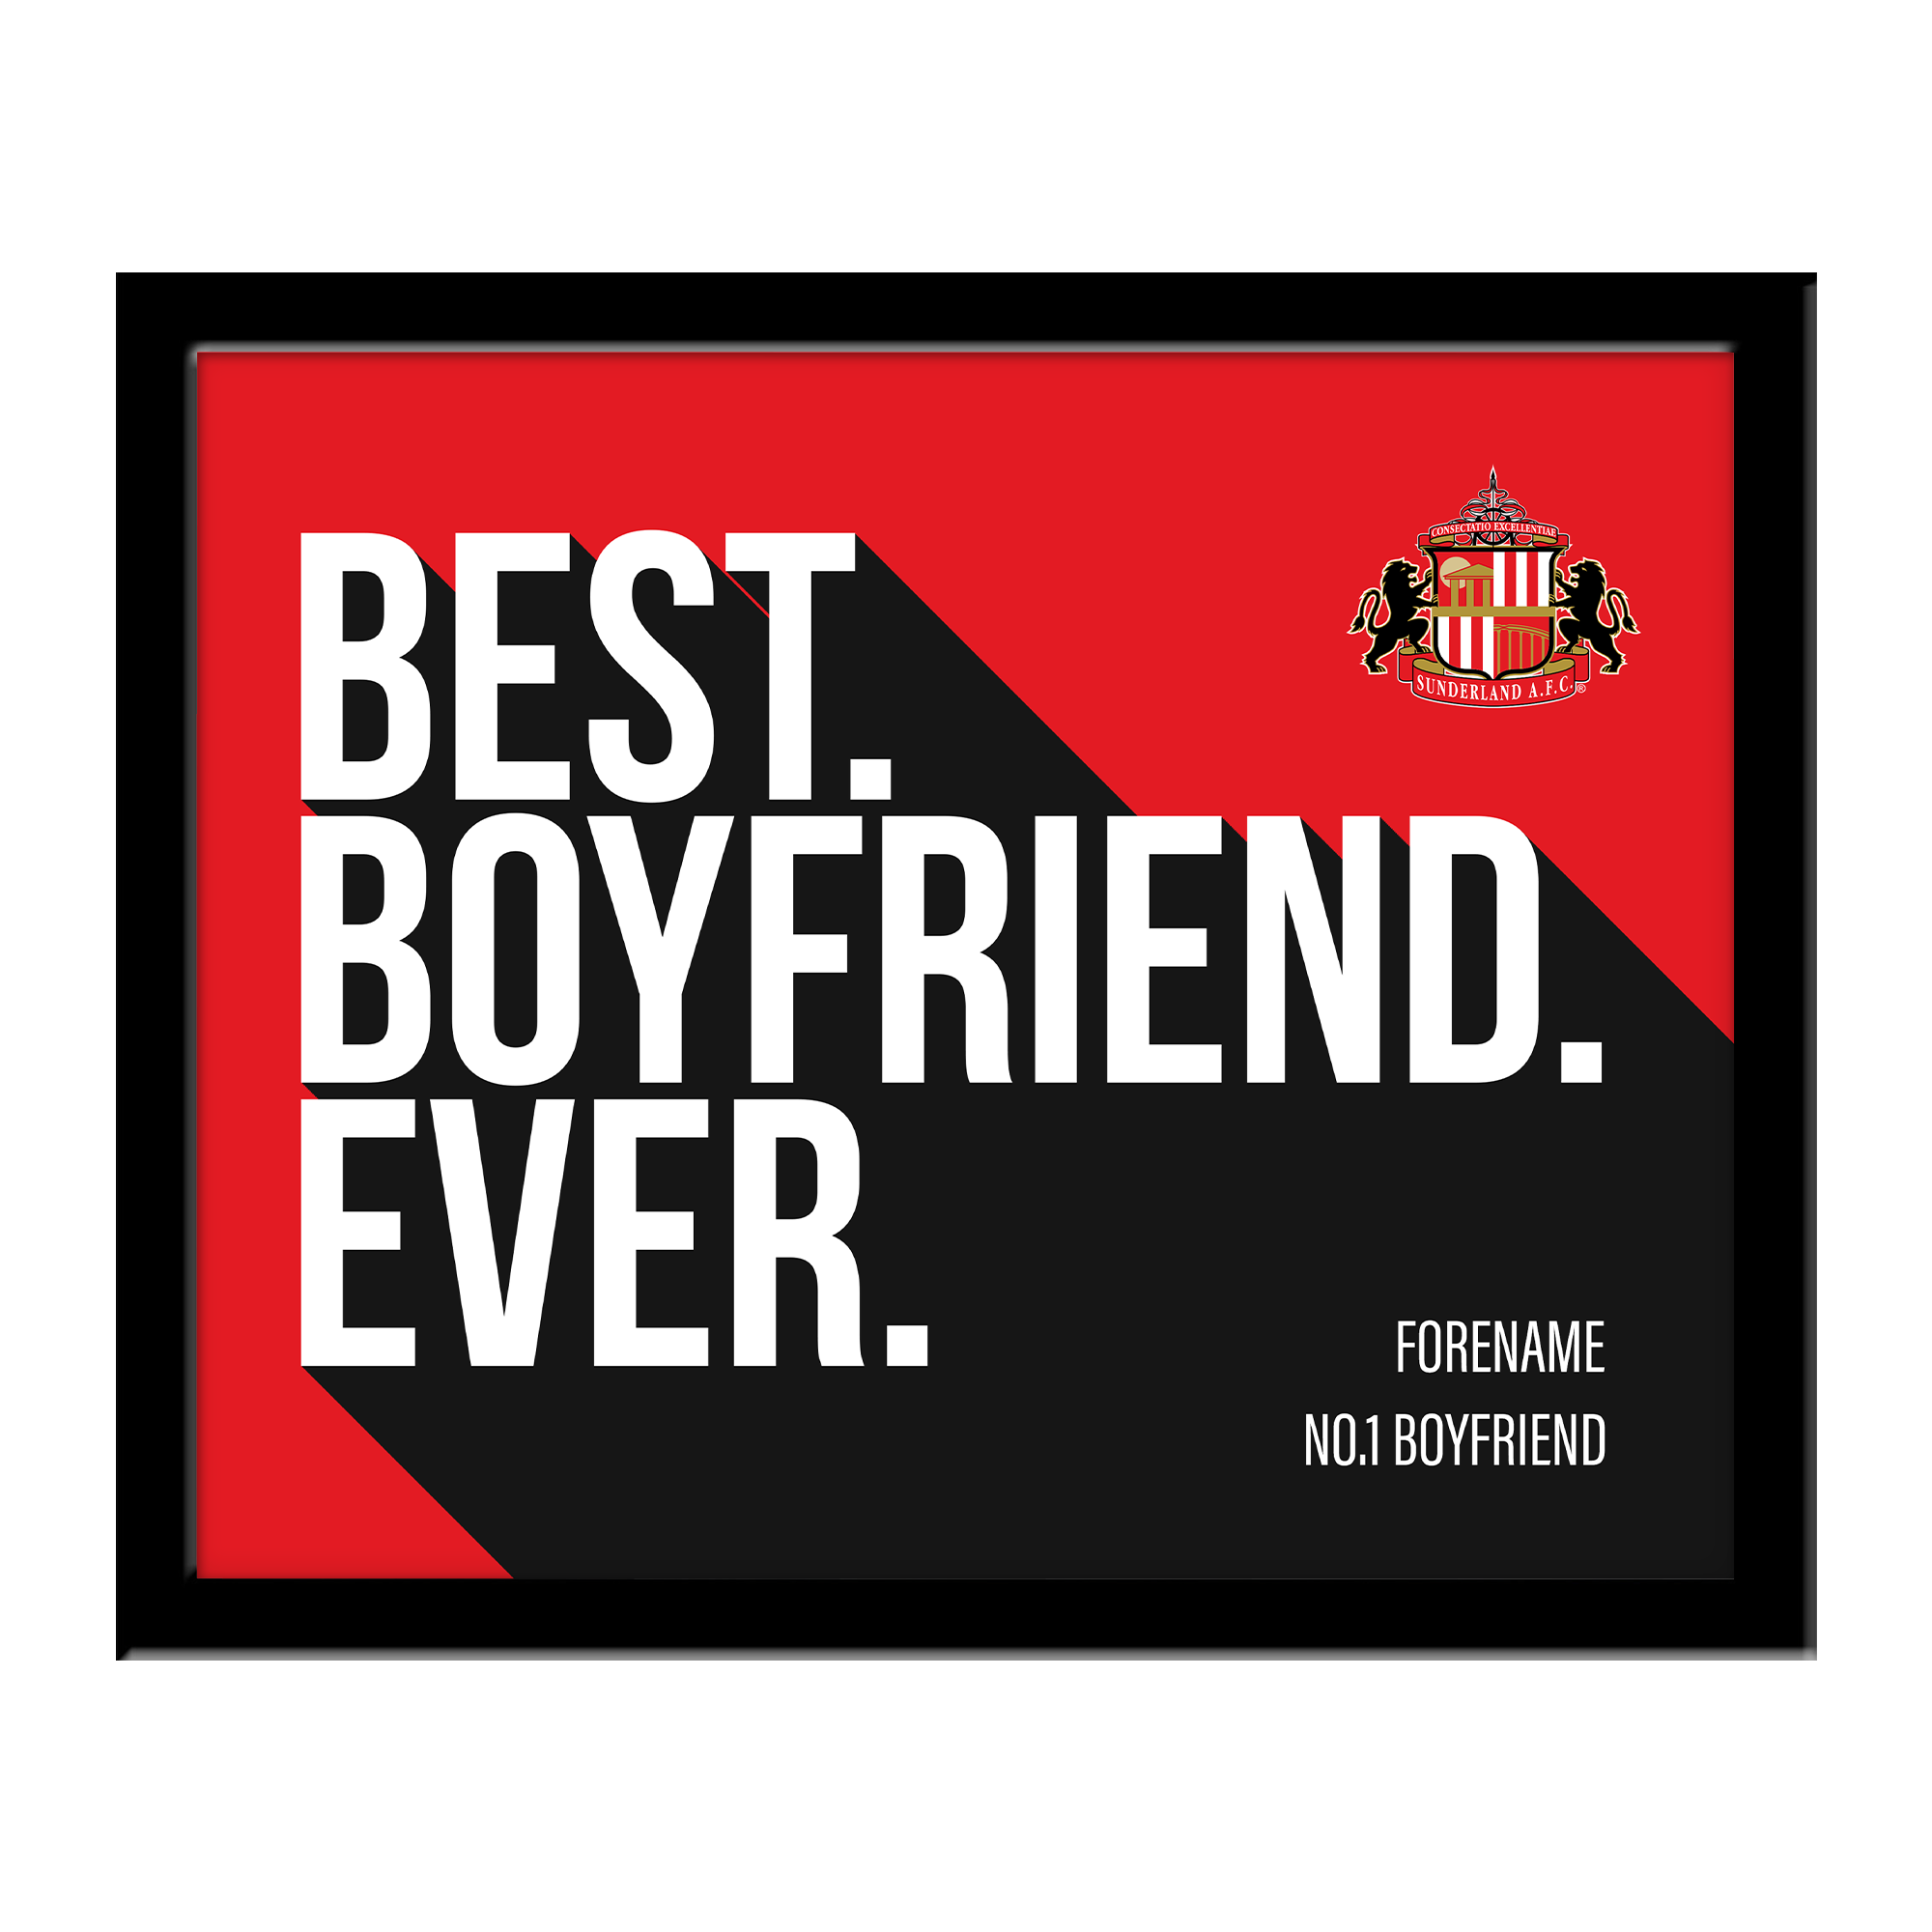 Sunderland Best Boyfriend Ever 10 x 8 Photo Framed